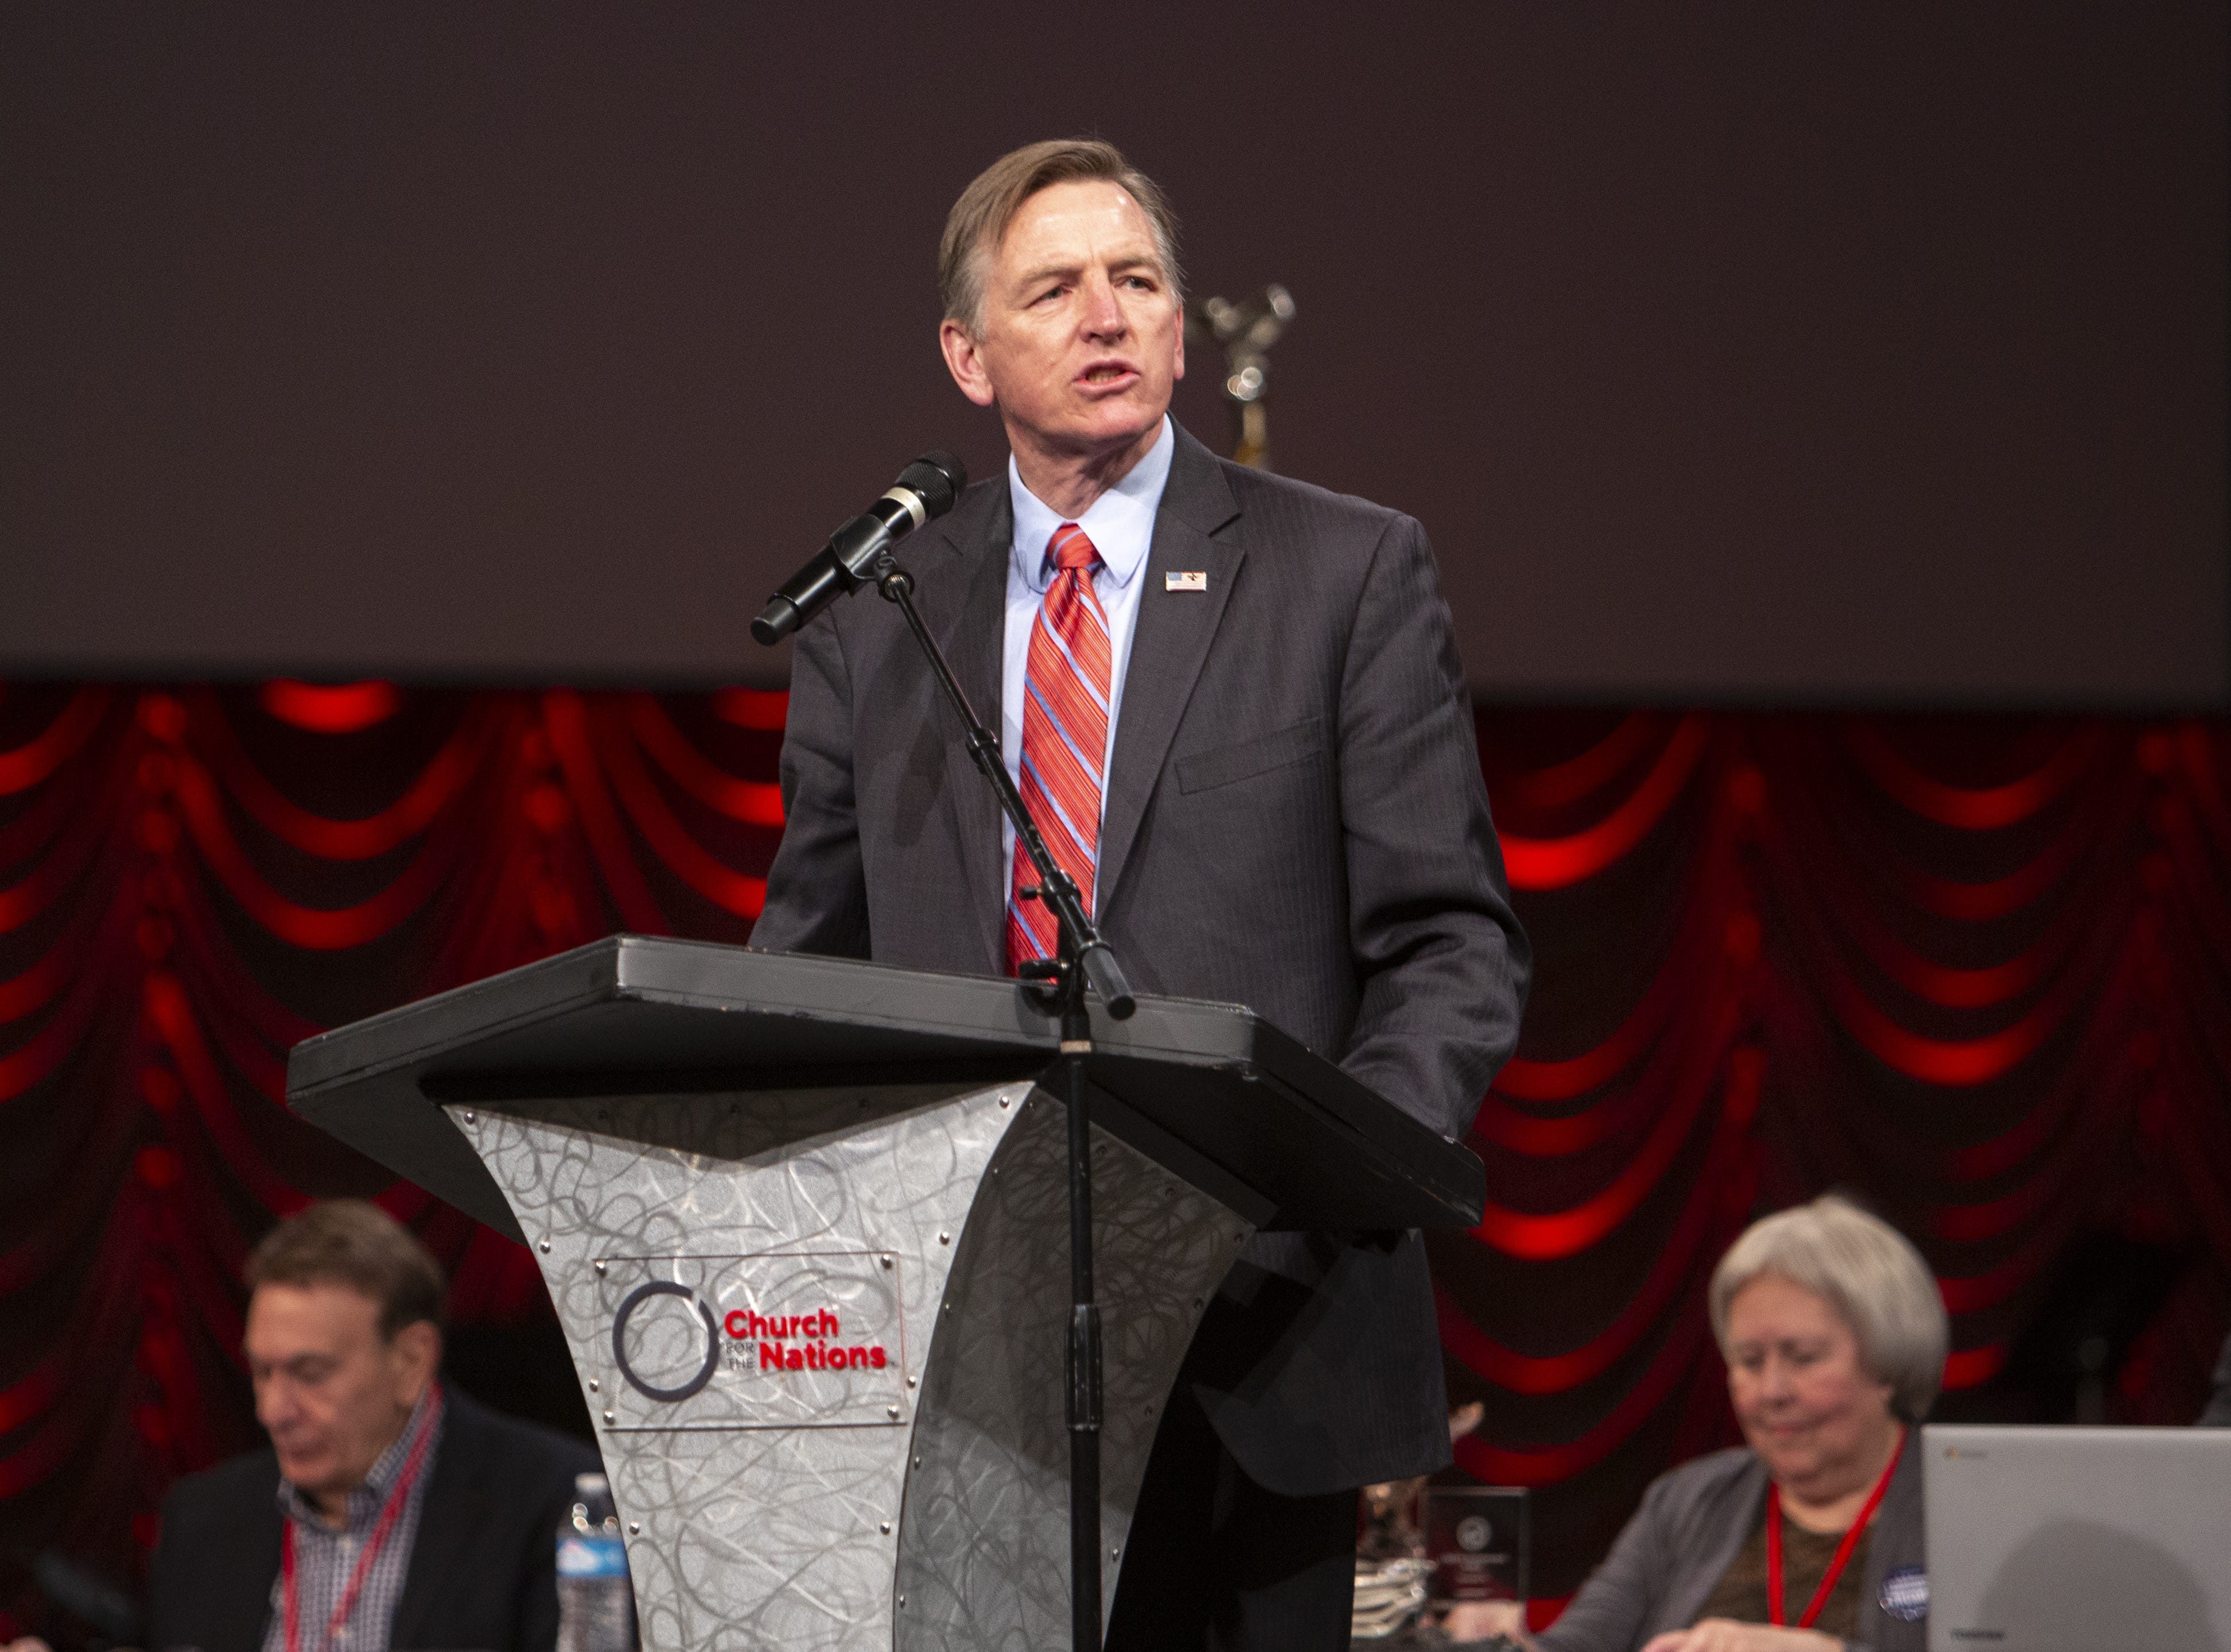 Rep. Paul Gosar speaks during the Statutory Meeting of the State Committee of the Arizona Republican Party at Church for the Nations on Saturday, Jan. 26, 2019.